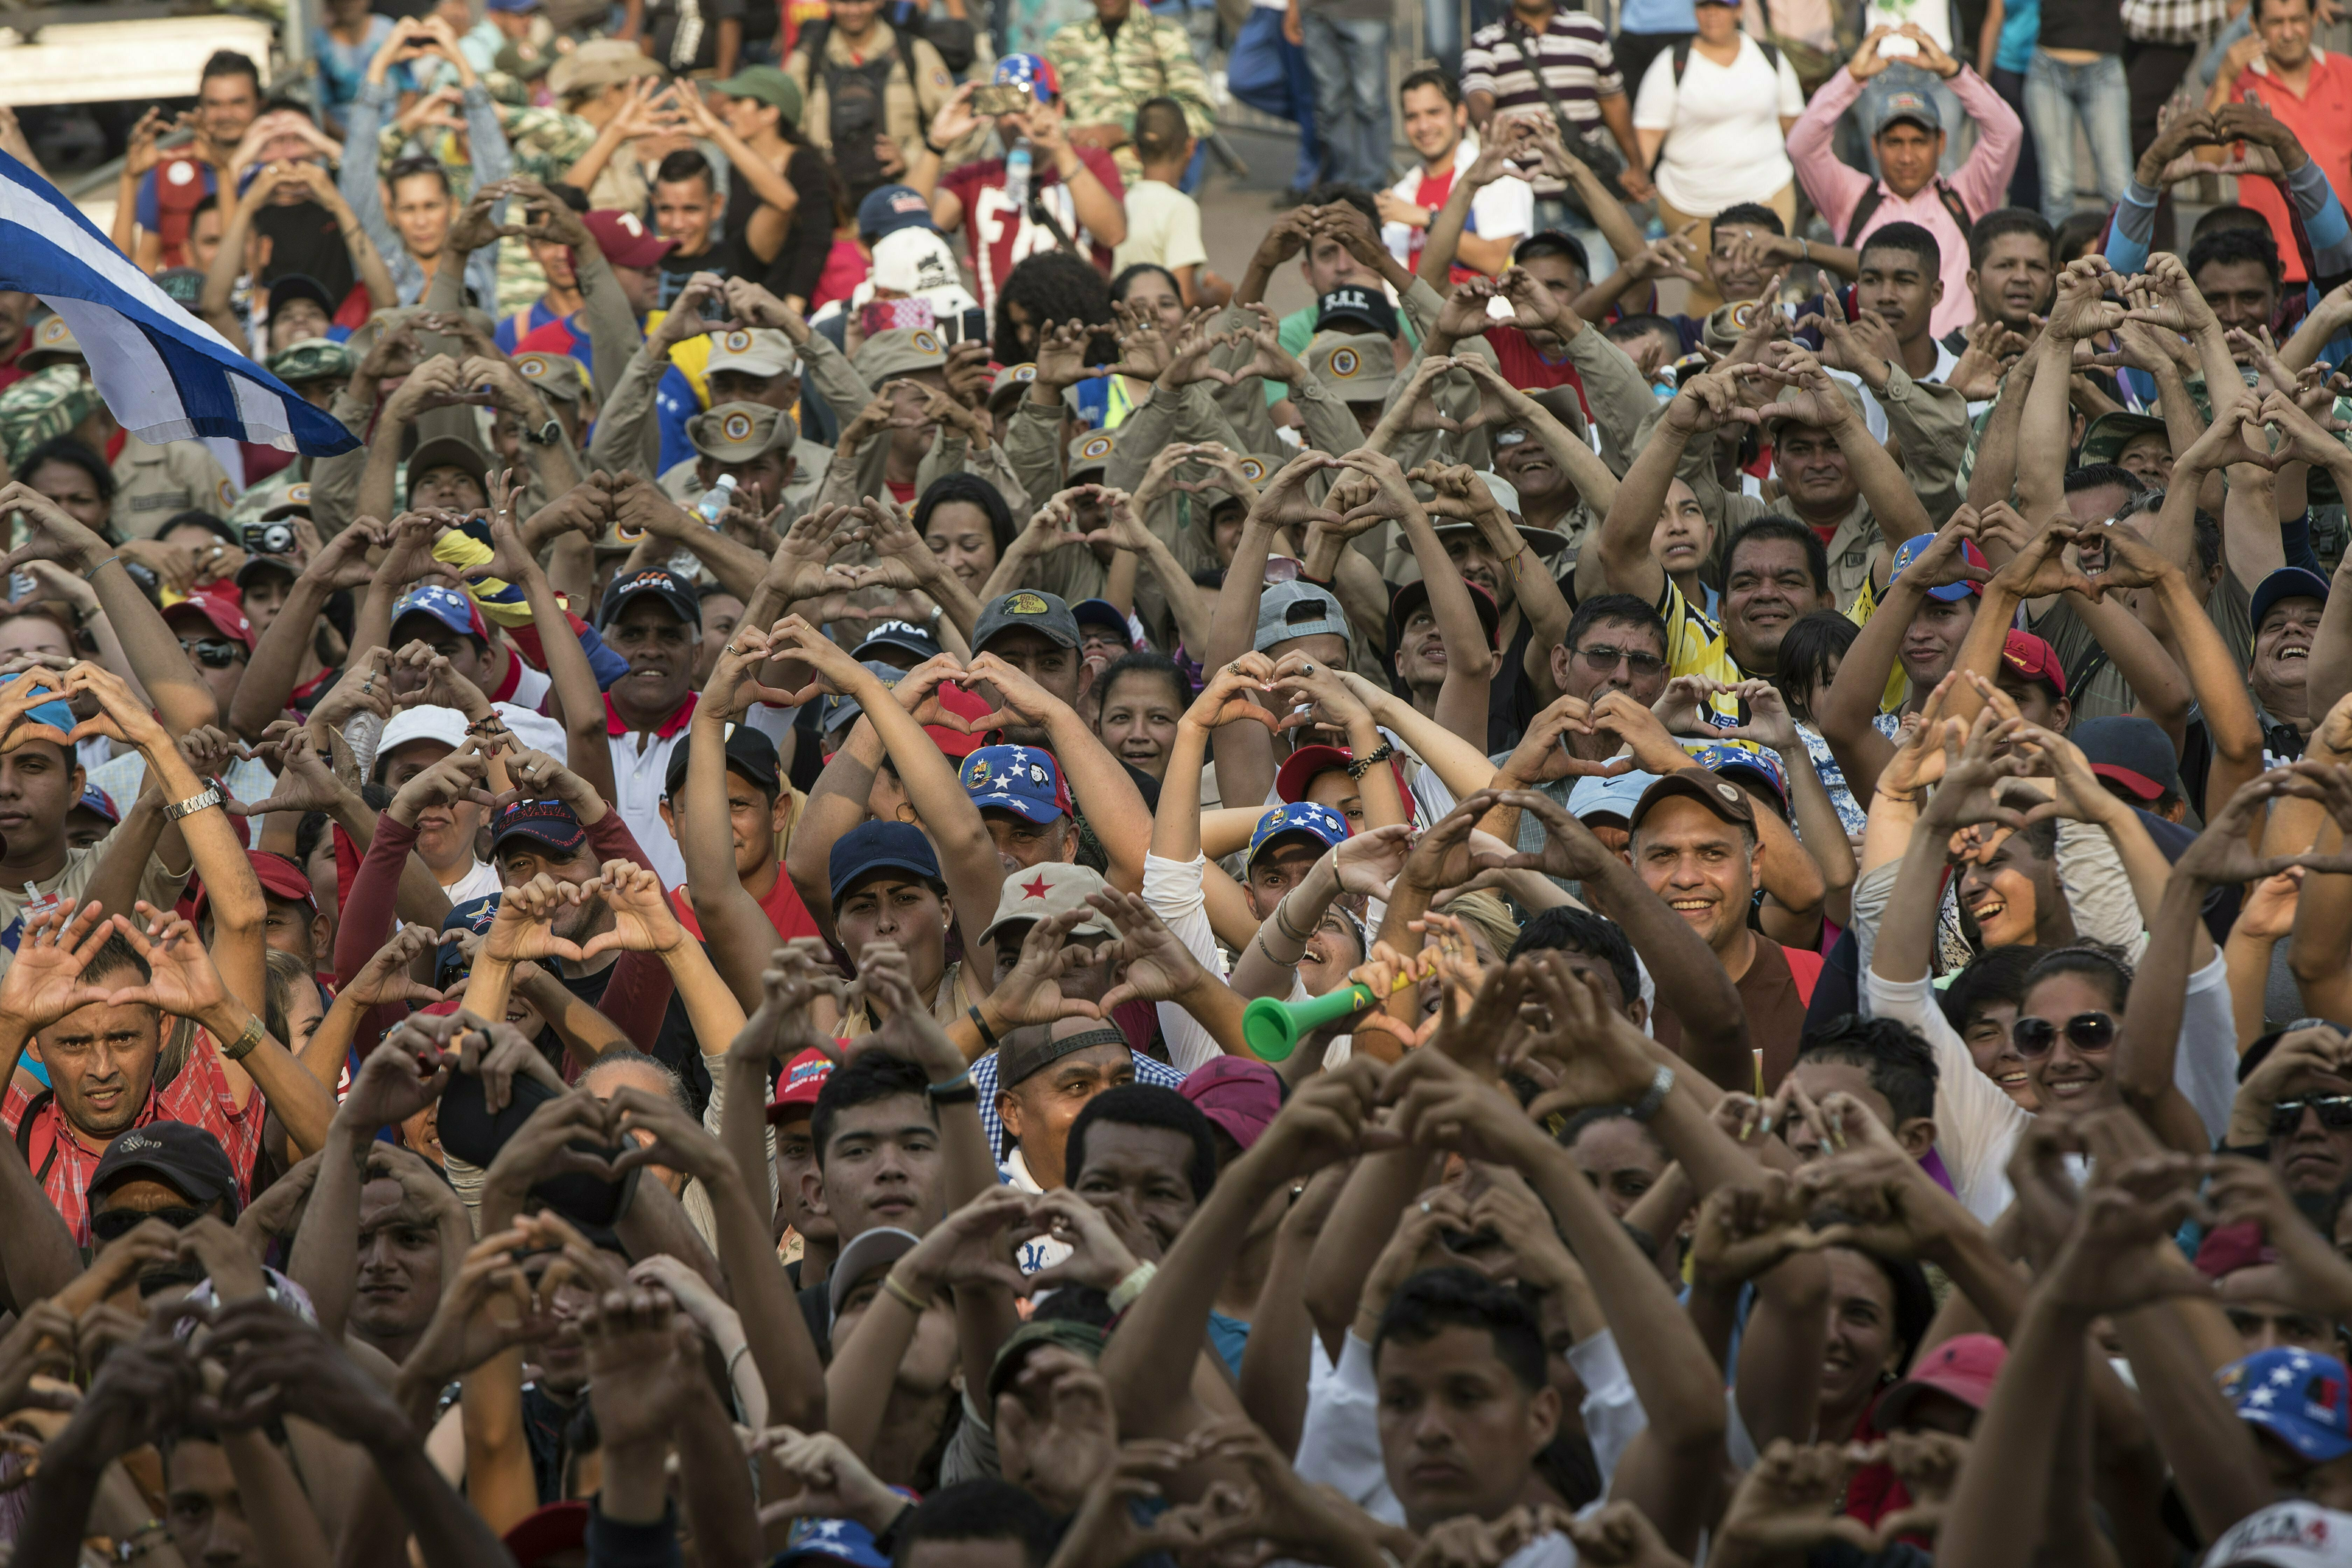 """Government supporters flash heart-hand signals during the """"Hands off Venezuela"""" concert at the Tienditas International Bridge, in Venezuela on the border with Colombia, Friday, Feb. 22, 2019. Venezuela's power struggle is set to convert into a battle of the bands Friday when musicians demanding Nicolas Maduro allow in humanitarian aid and those supporting the embattled leader's refusal sing in rival concerts being held at both sides of a border bridge where tons of donated food and medicine are being stored. (AP Photo/Rodrigo Abd)"""